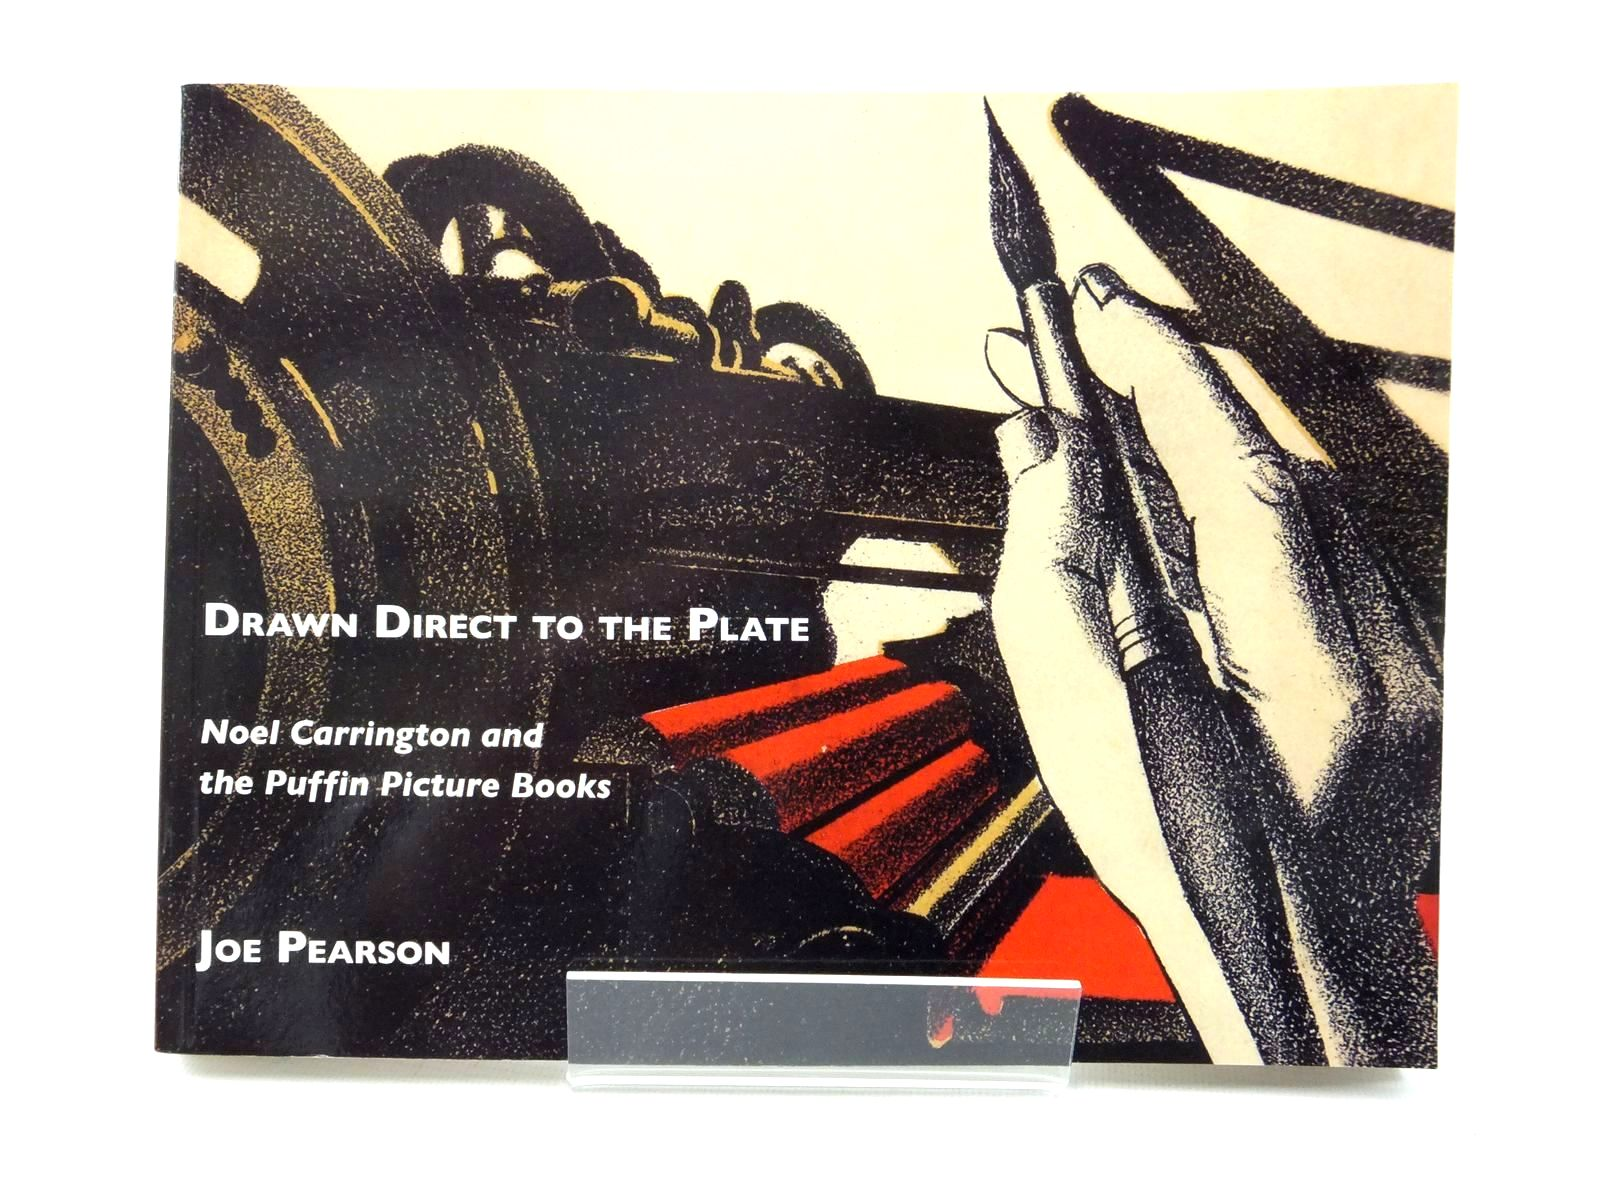 Photo of DRAWN DIRECT TO THE PLATE NOEL CARRINGTON AND THE PUFFIN PICTURE BOOKS